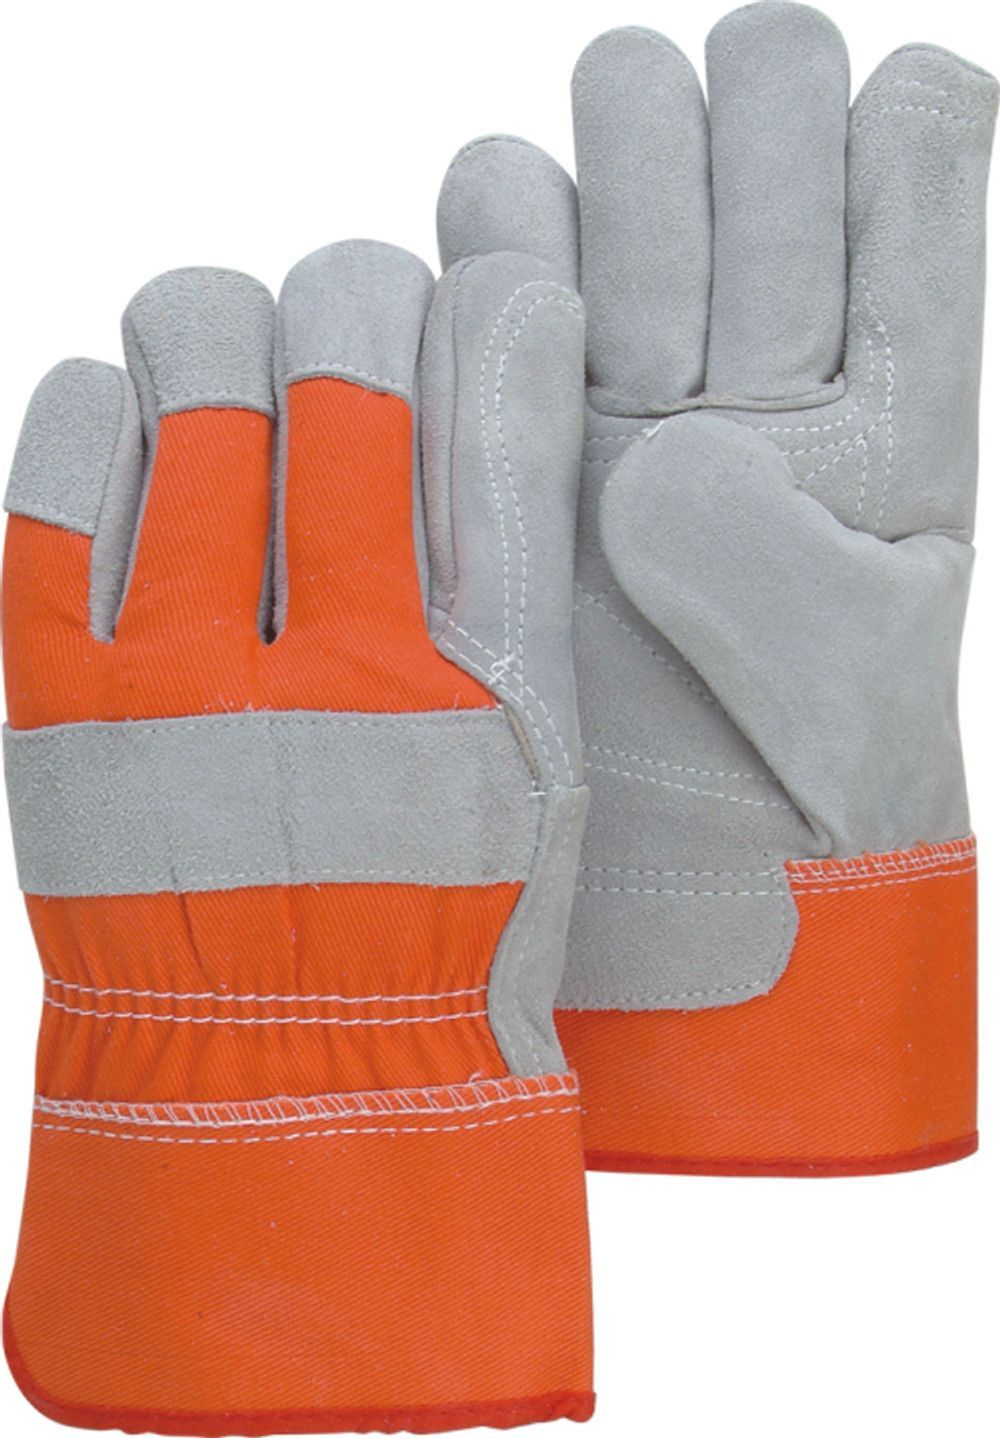 Insulated leather work gloves amazon - Majestic 2501cdp Hi Vis Back Cuff Split Cowhide Leather Work Gloves